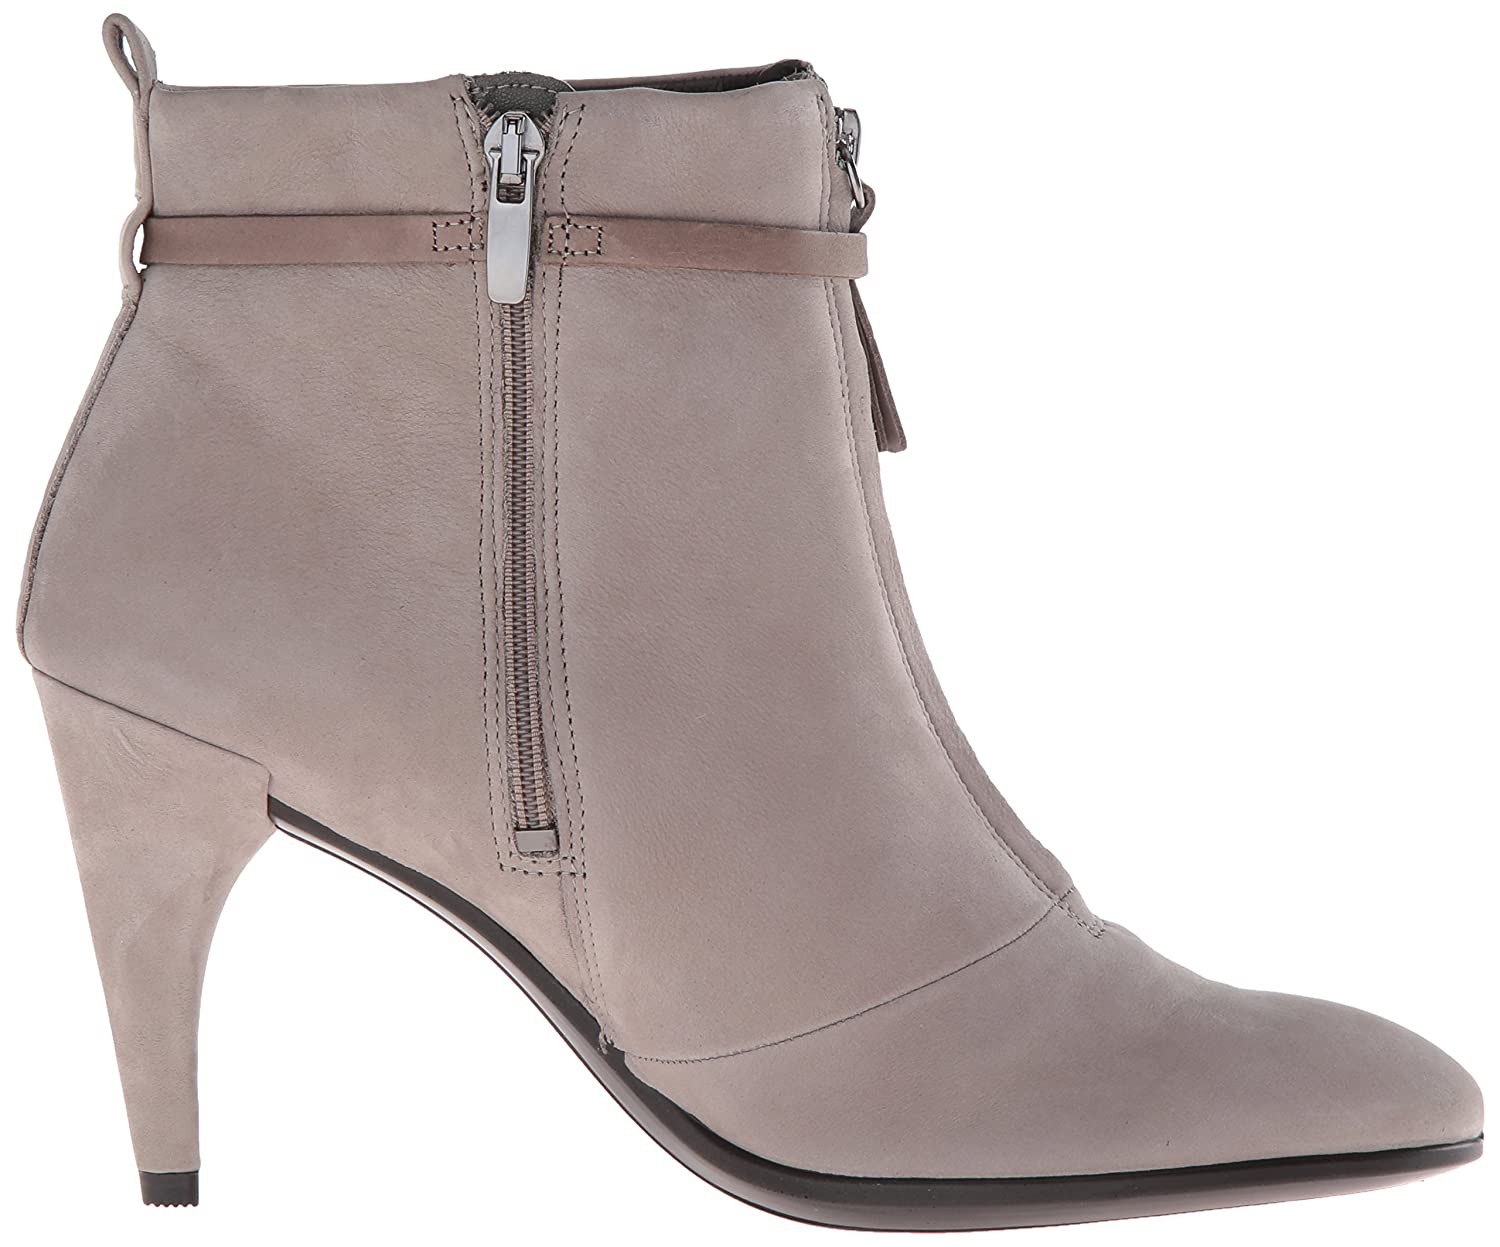 ECCO Women's Shape 75 Sleek Ankle Boot B01A9IUQEW 39 EU/8-8.5 M US|Warm Grey Nubuck